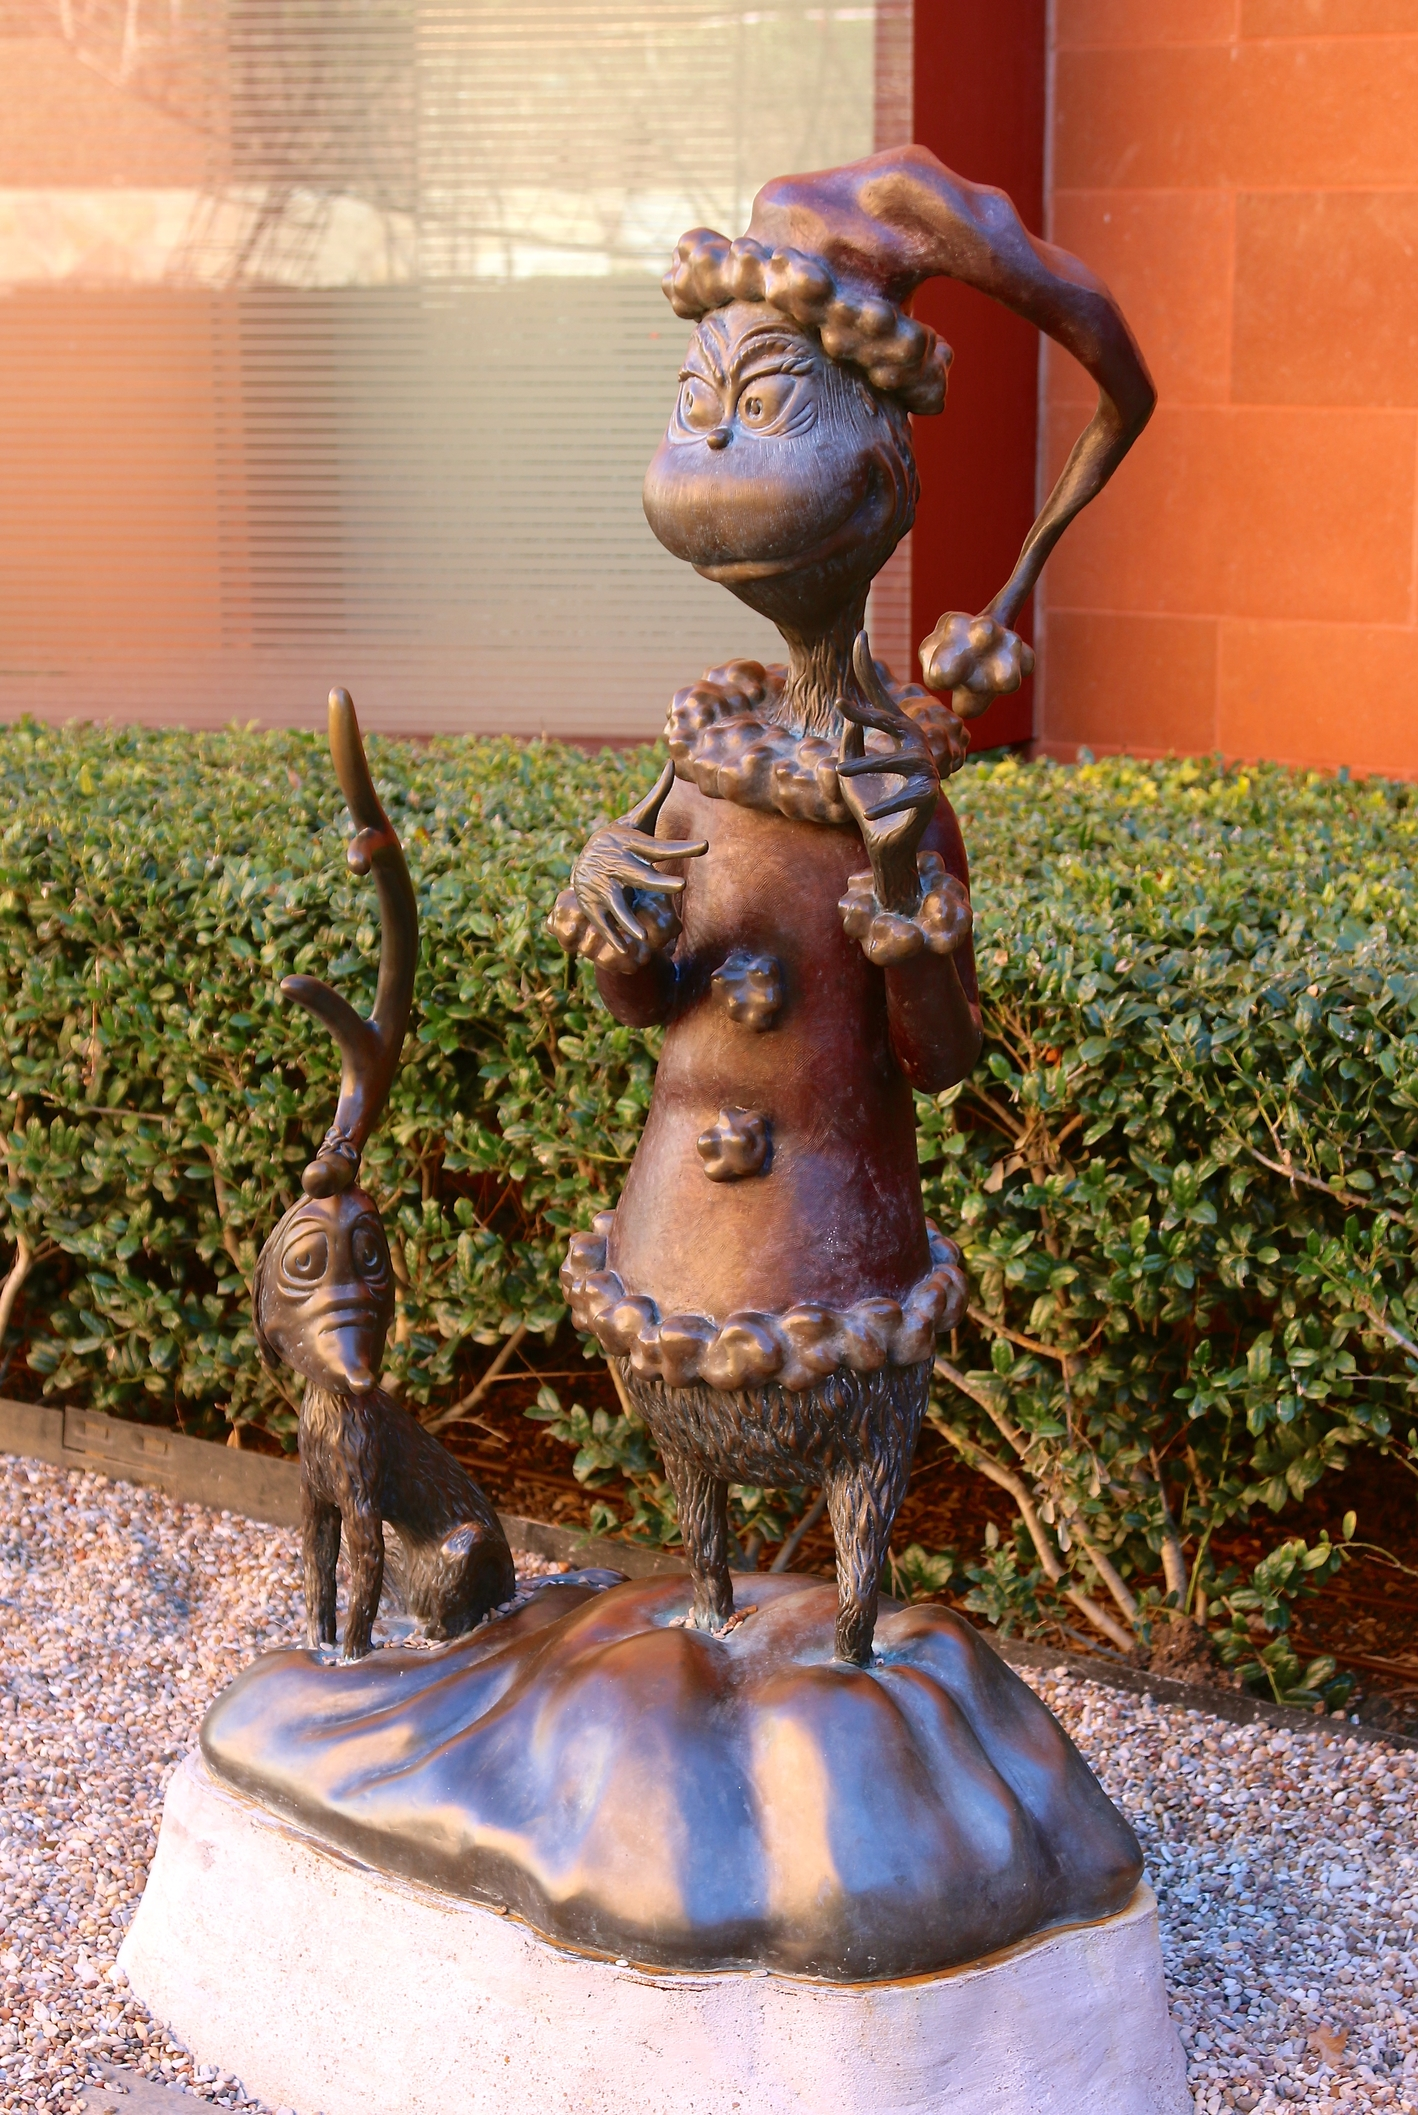 sculpture of Ned McDodd from Horton Hears a Who